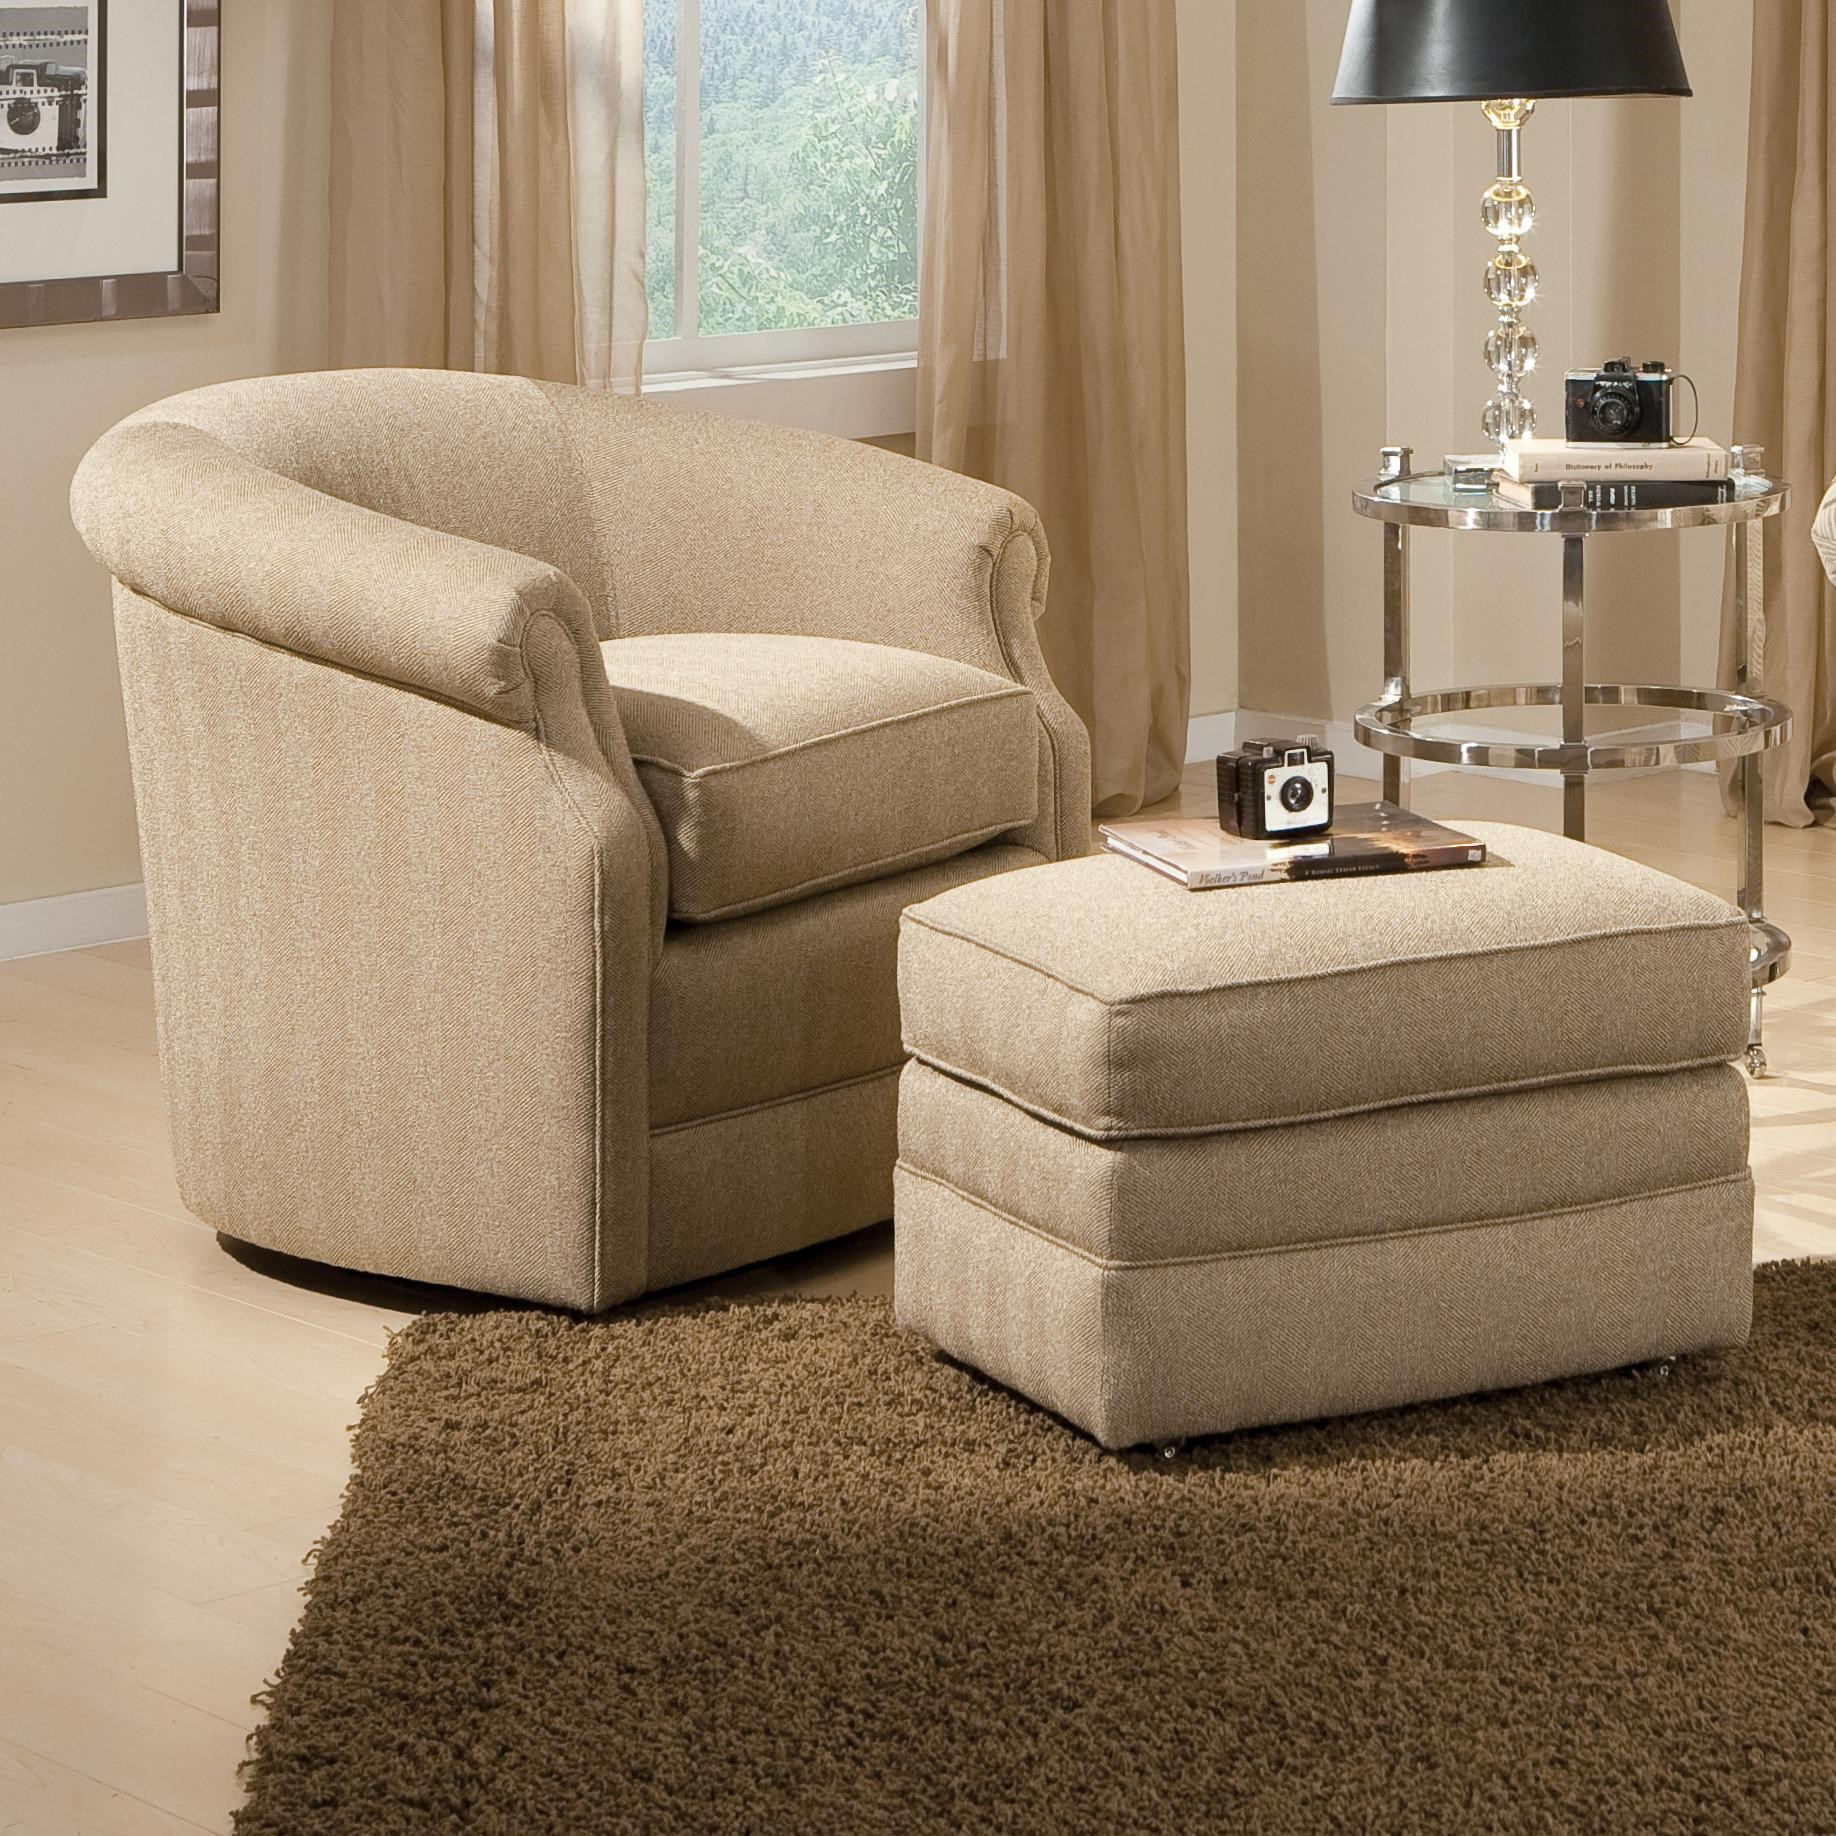 Awesome Smith Brothers Accent Chairs And Ottomans SB Barrel Swivel Chair And Ottoman  With Casters